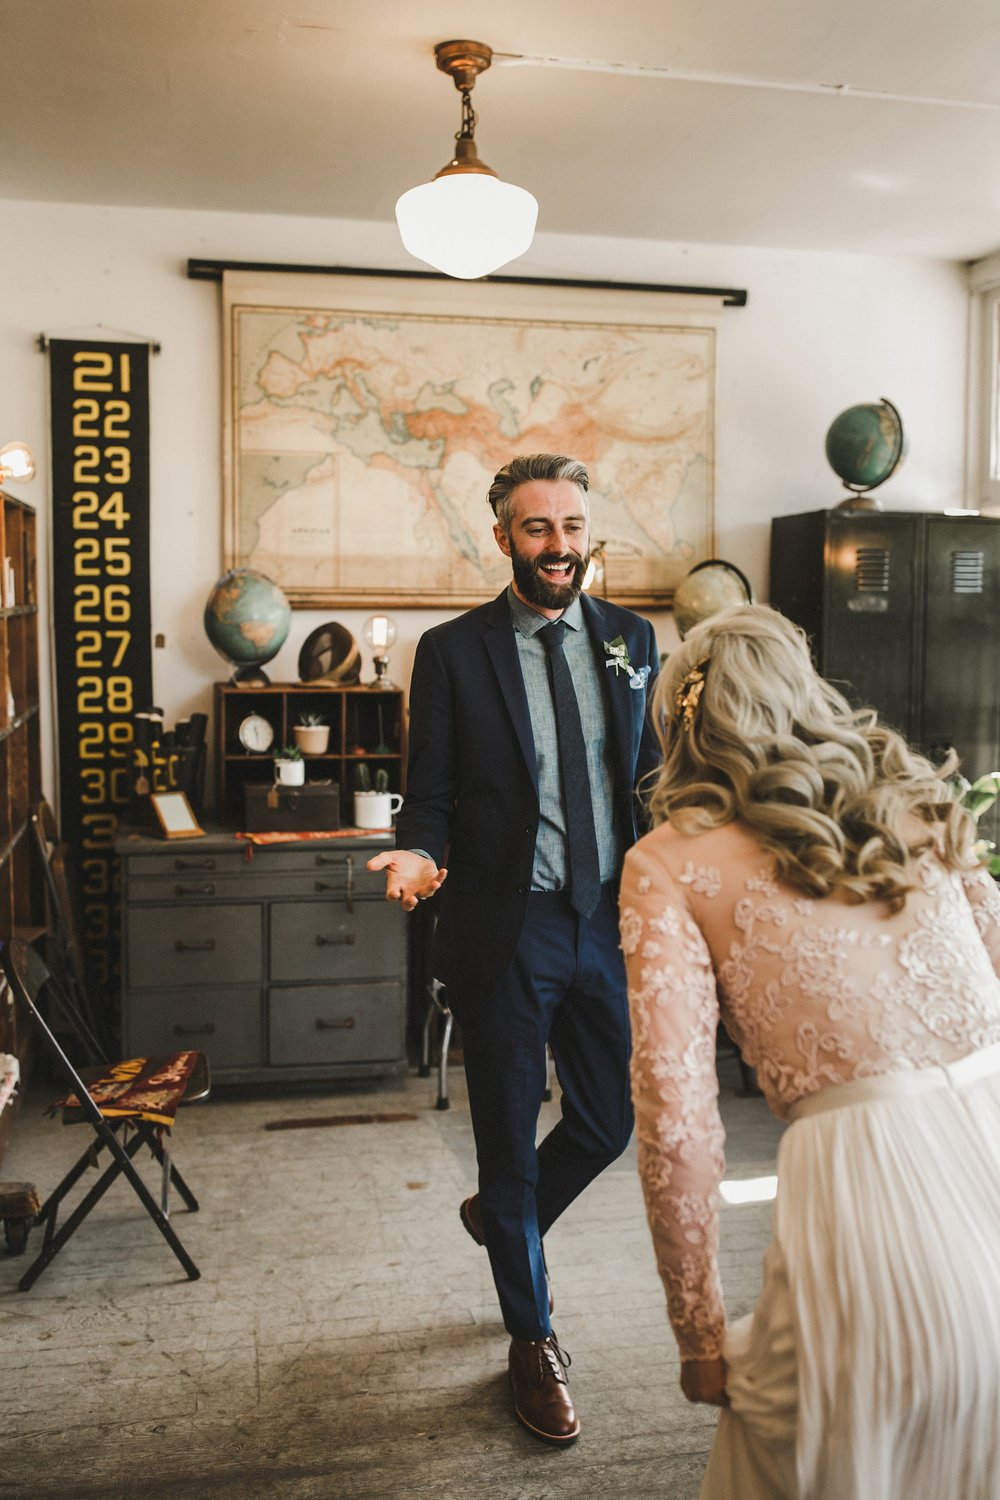 HOWE ABOUT FOREVA - Vancouver urban woodshop wedding by Shari + Mike photographers - first look